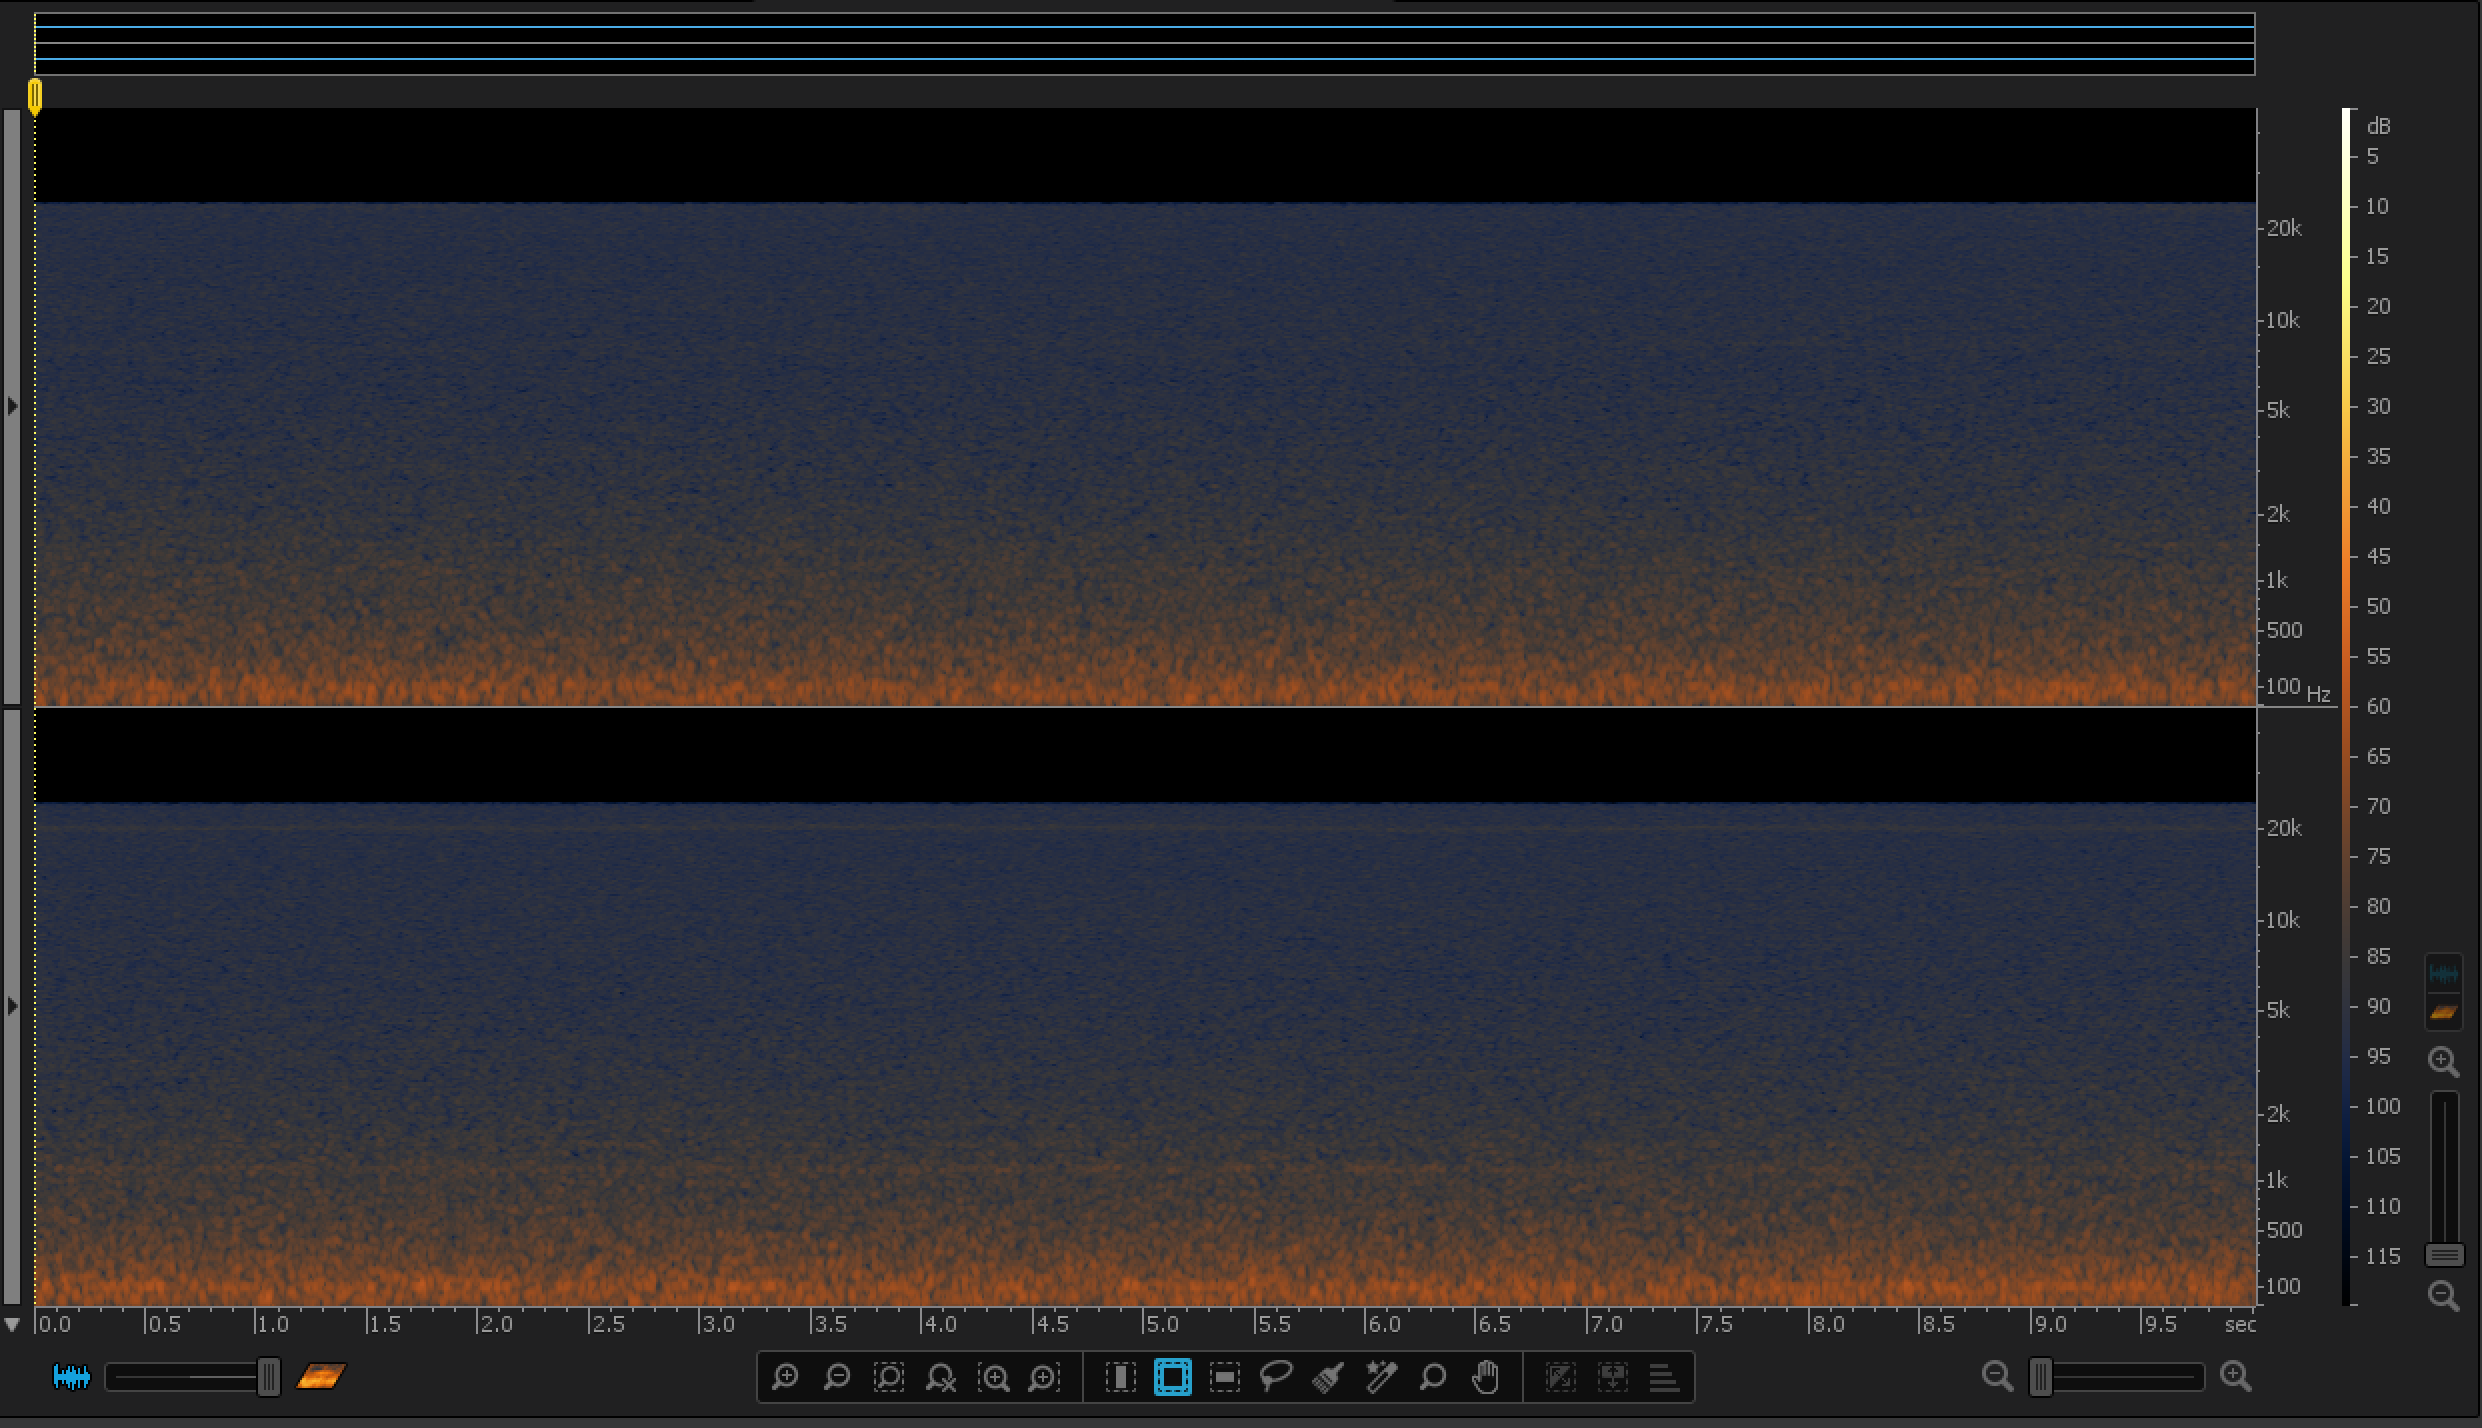 H2n Noise Spectrogram (Source: iZotope RX 4)